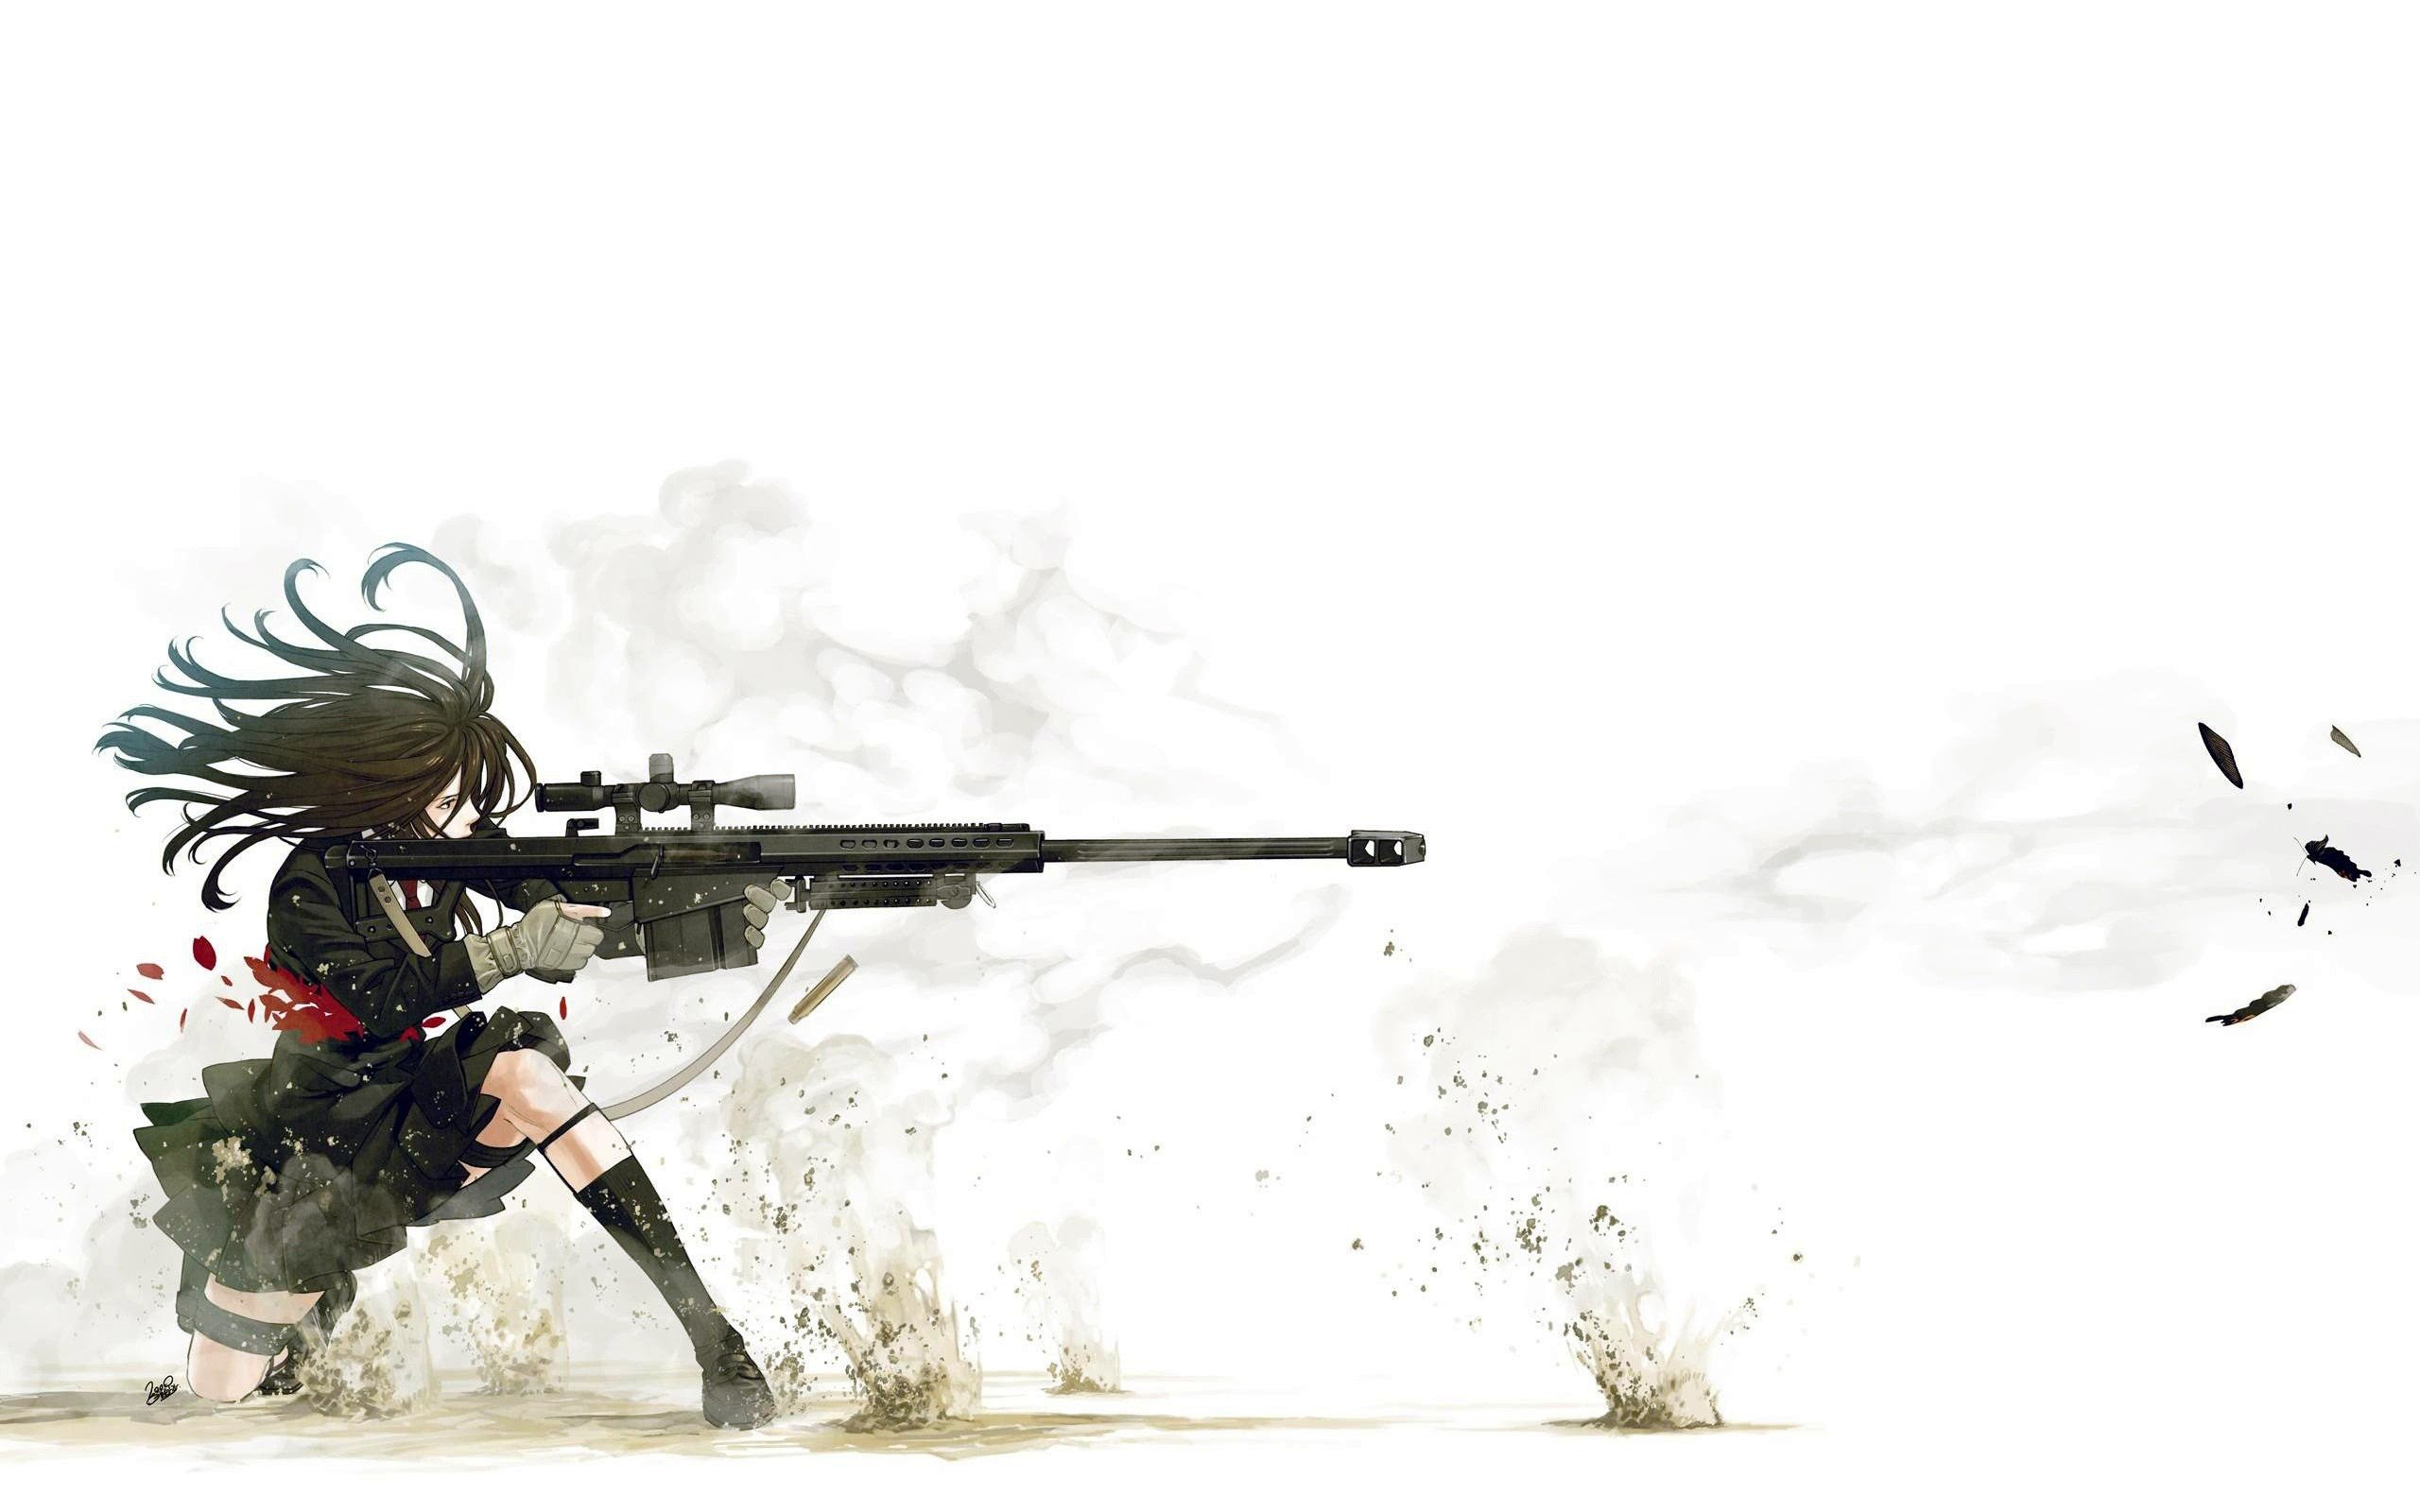 2560x1600 School uniforms snipers anime action simple background Kozaki Yusuke ...